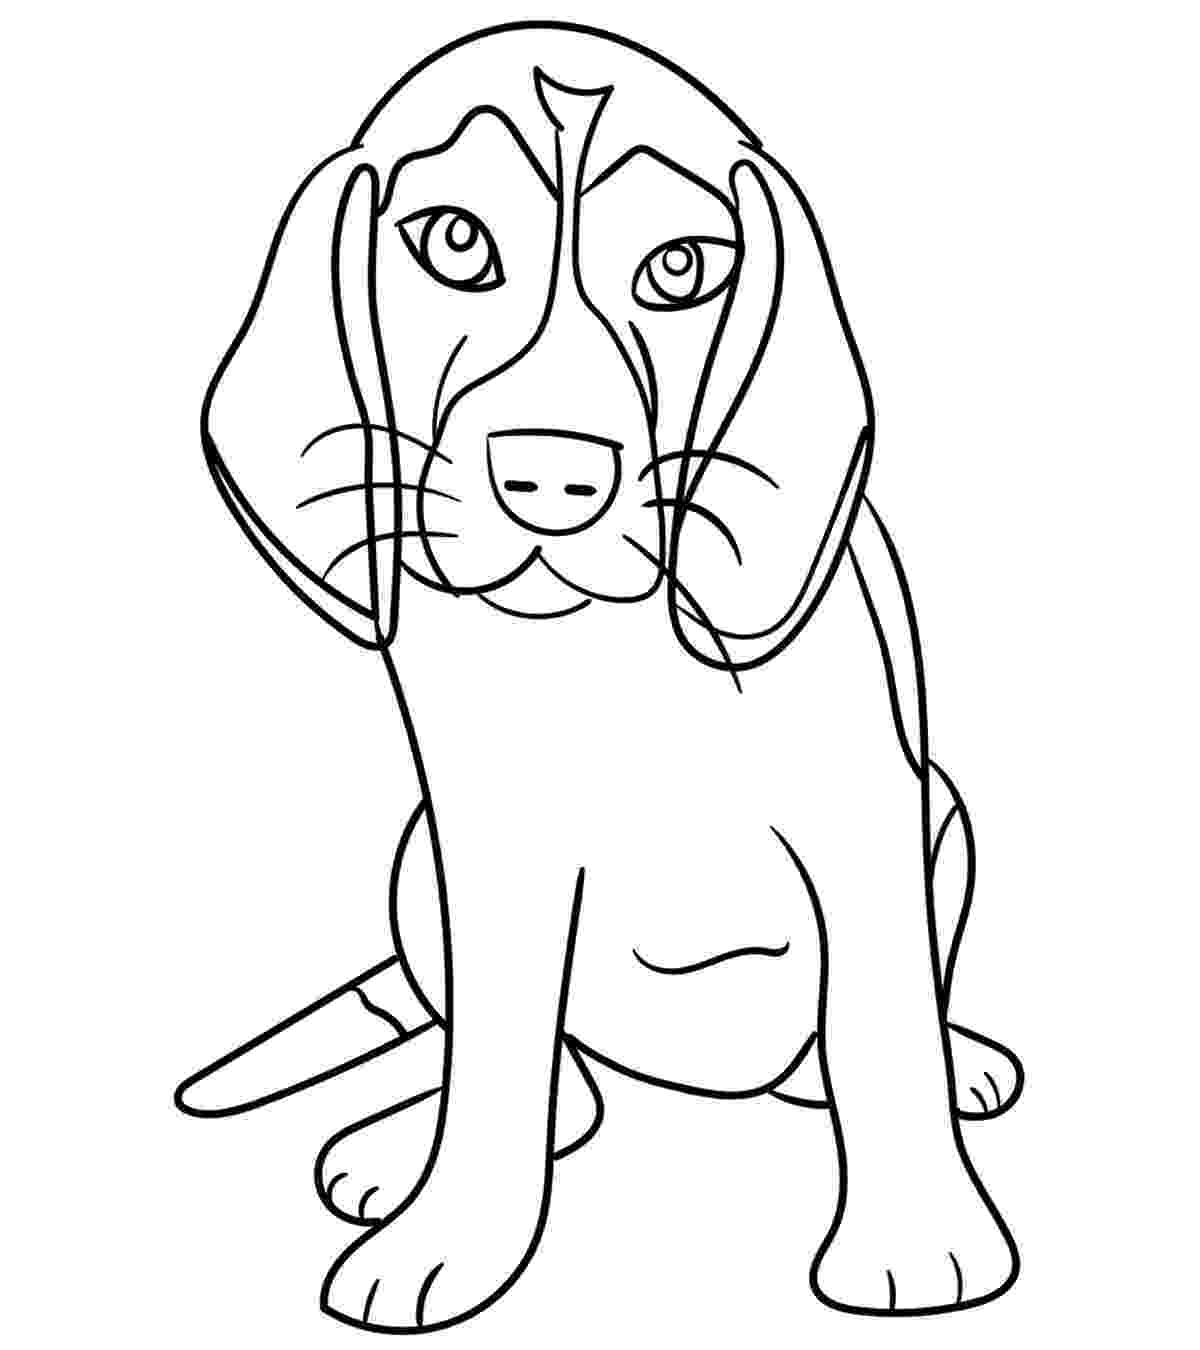 coloring pages of a dog free printable dog coloring pages for kids pages a of coloring dog